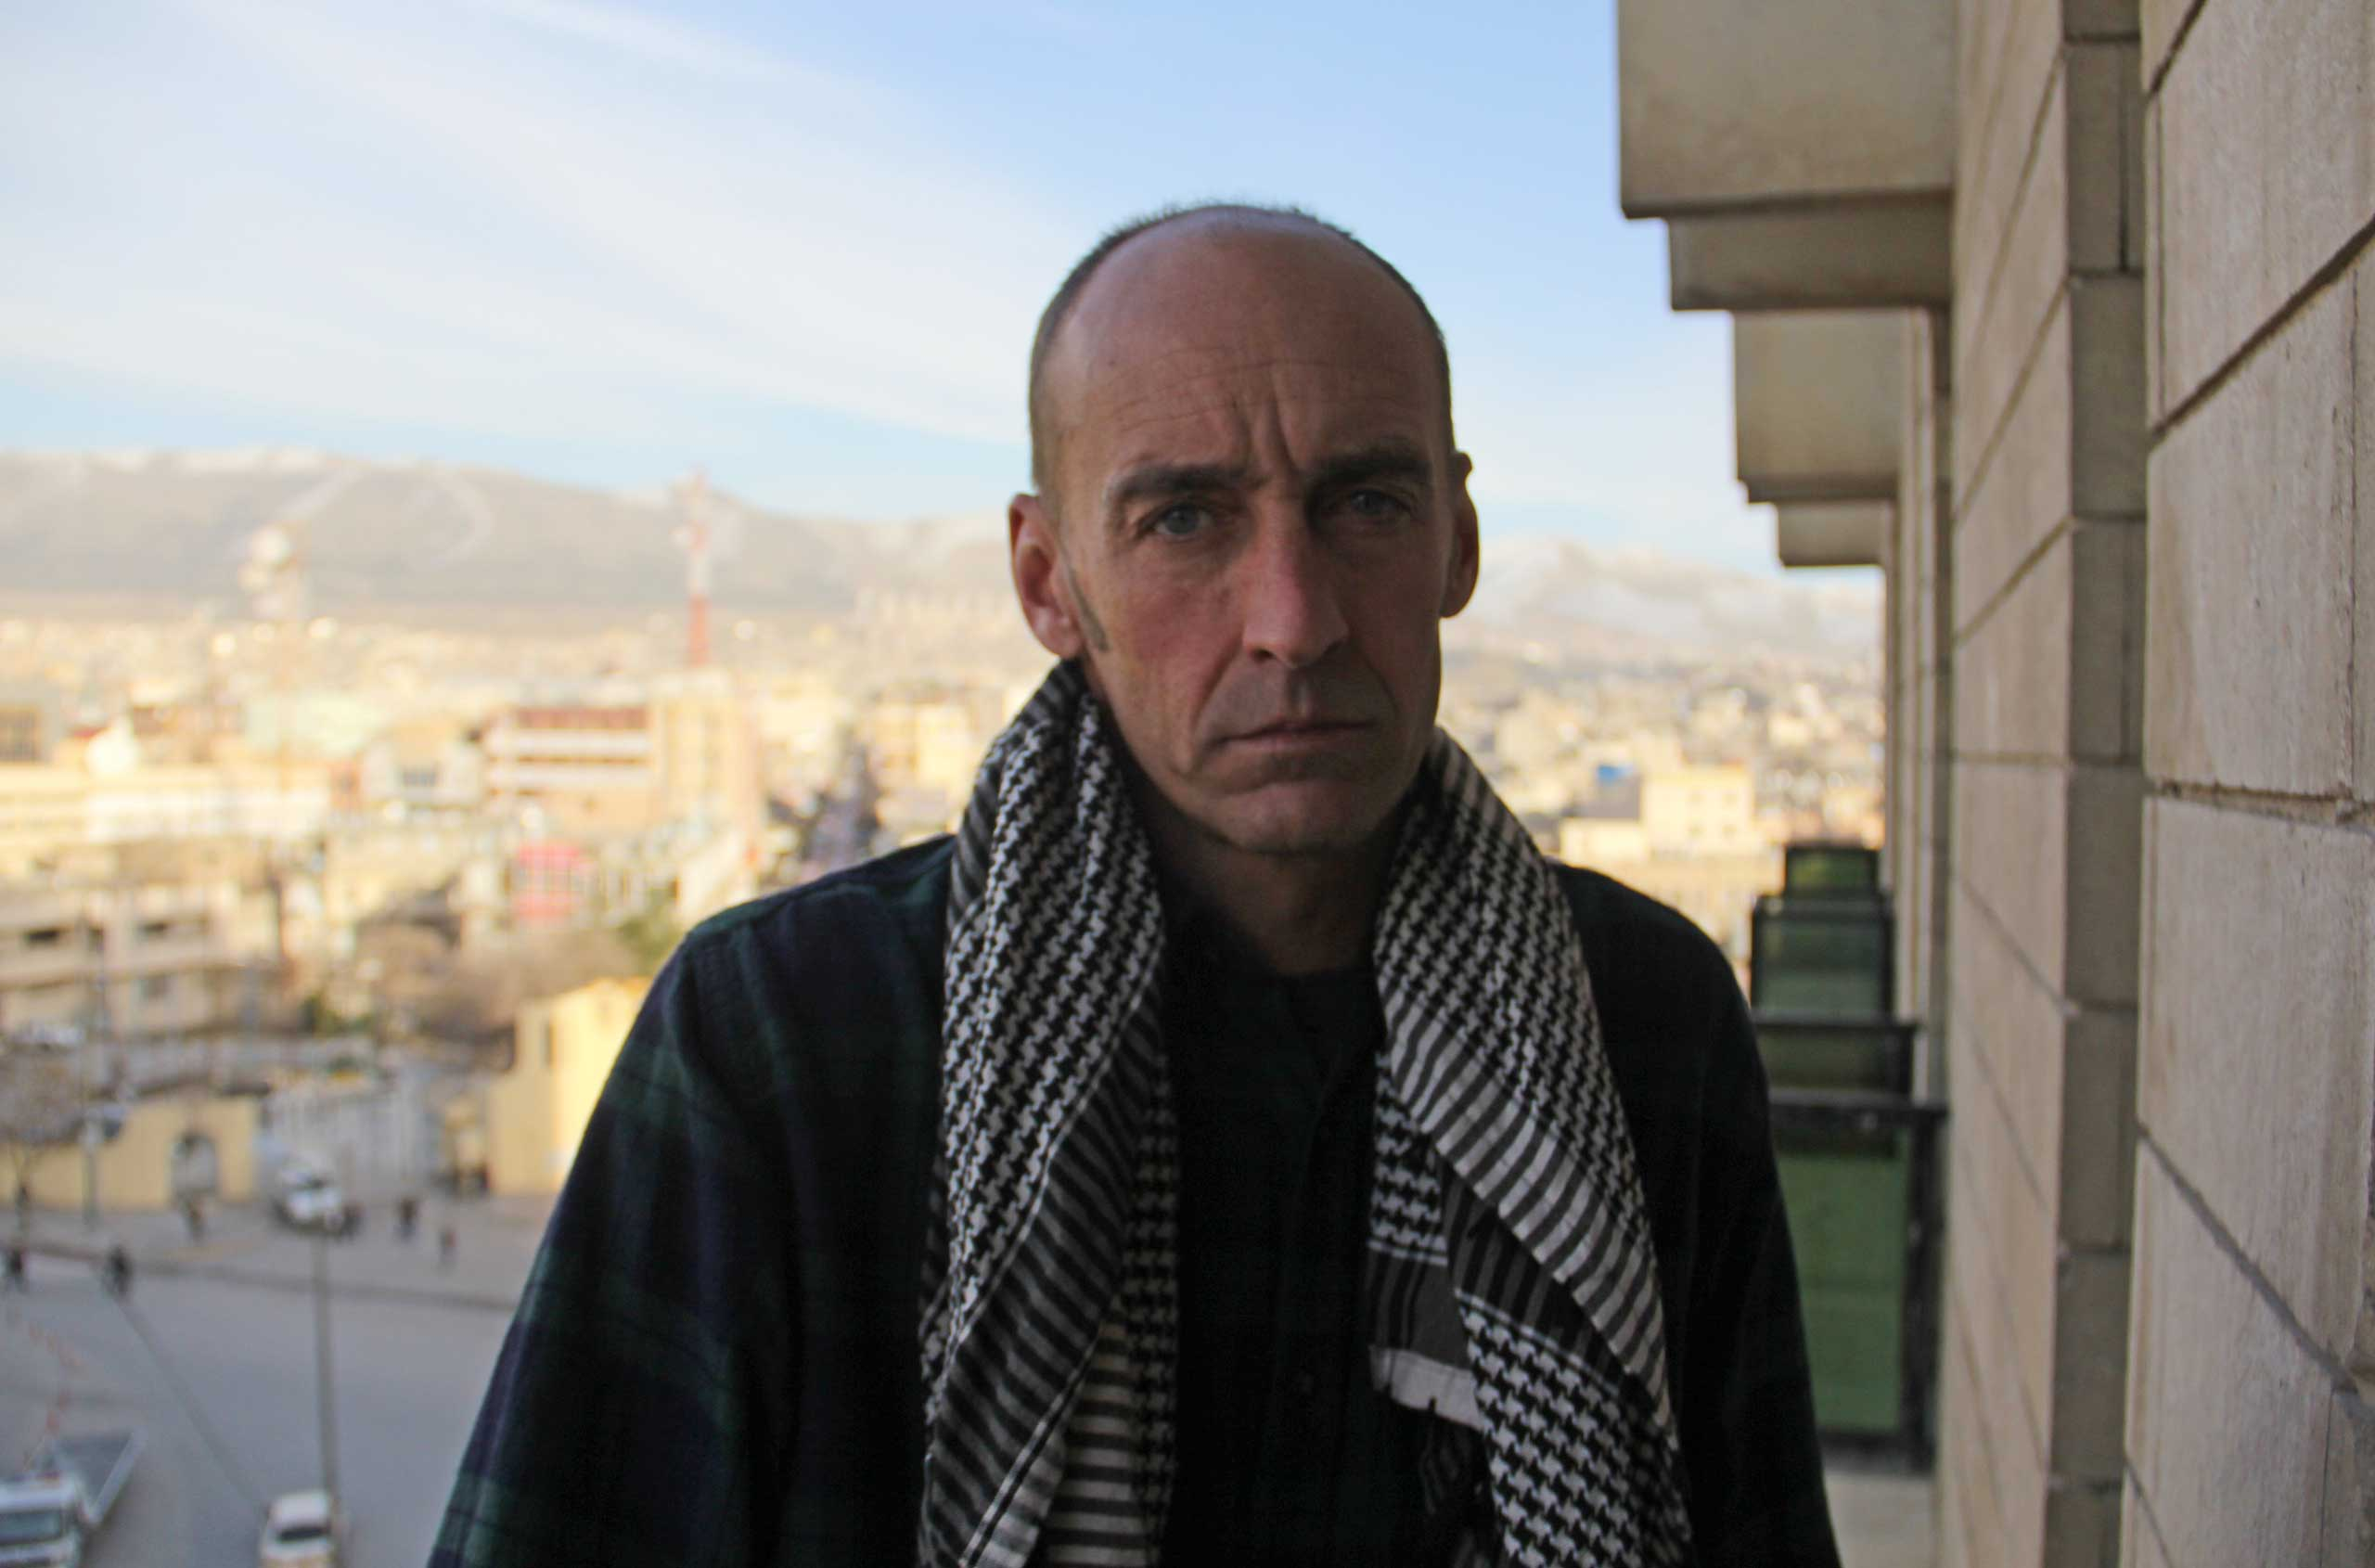 Dean Parker in the Iraqi Kurdish city of Sulaymaniah after spending weeks on the front lines with Kurdish fighters in Syria. Jan. 14, 2015.